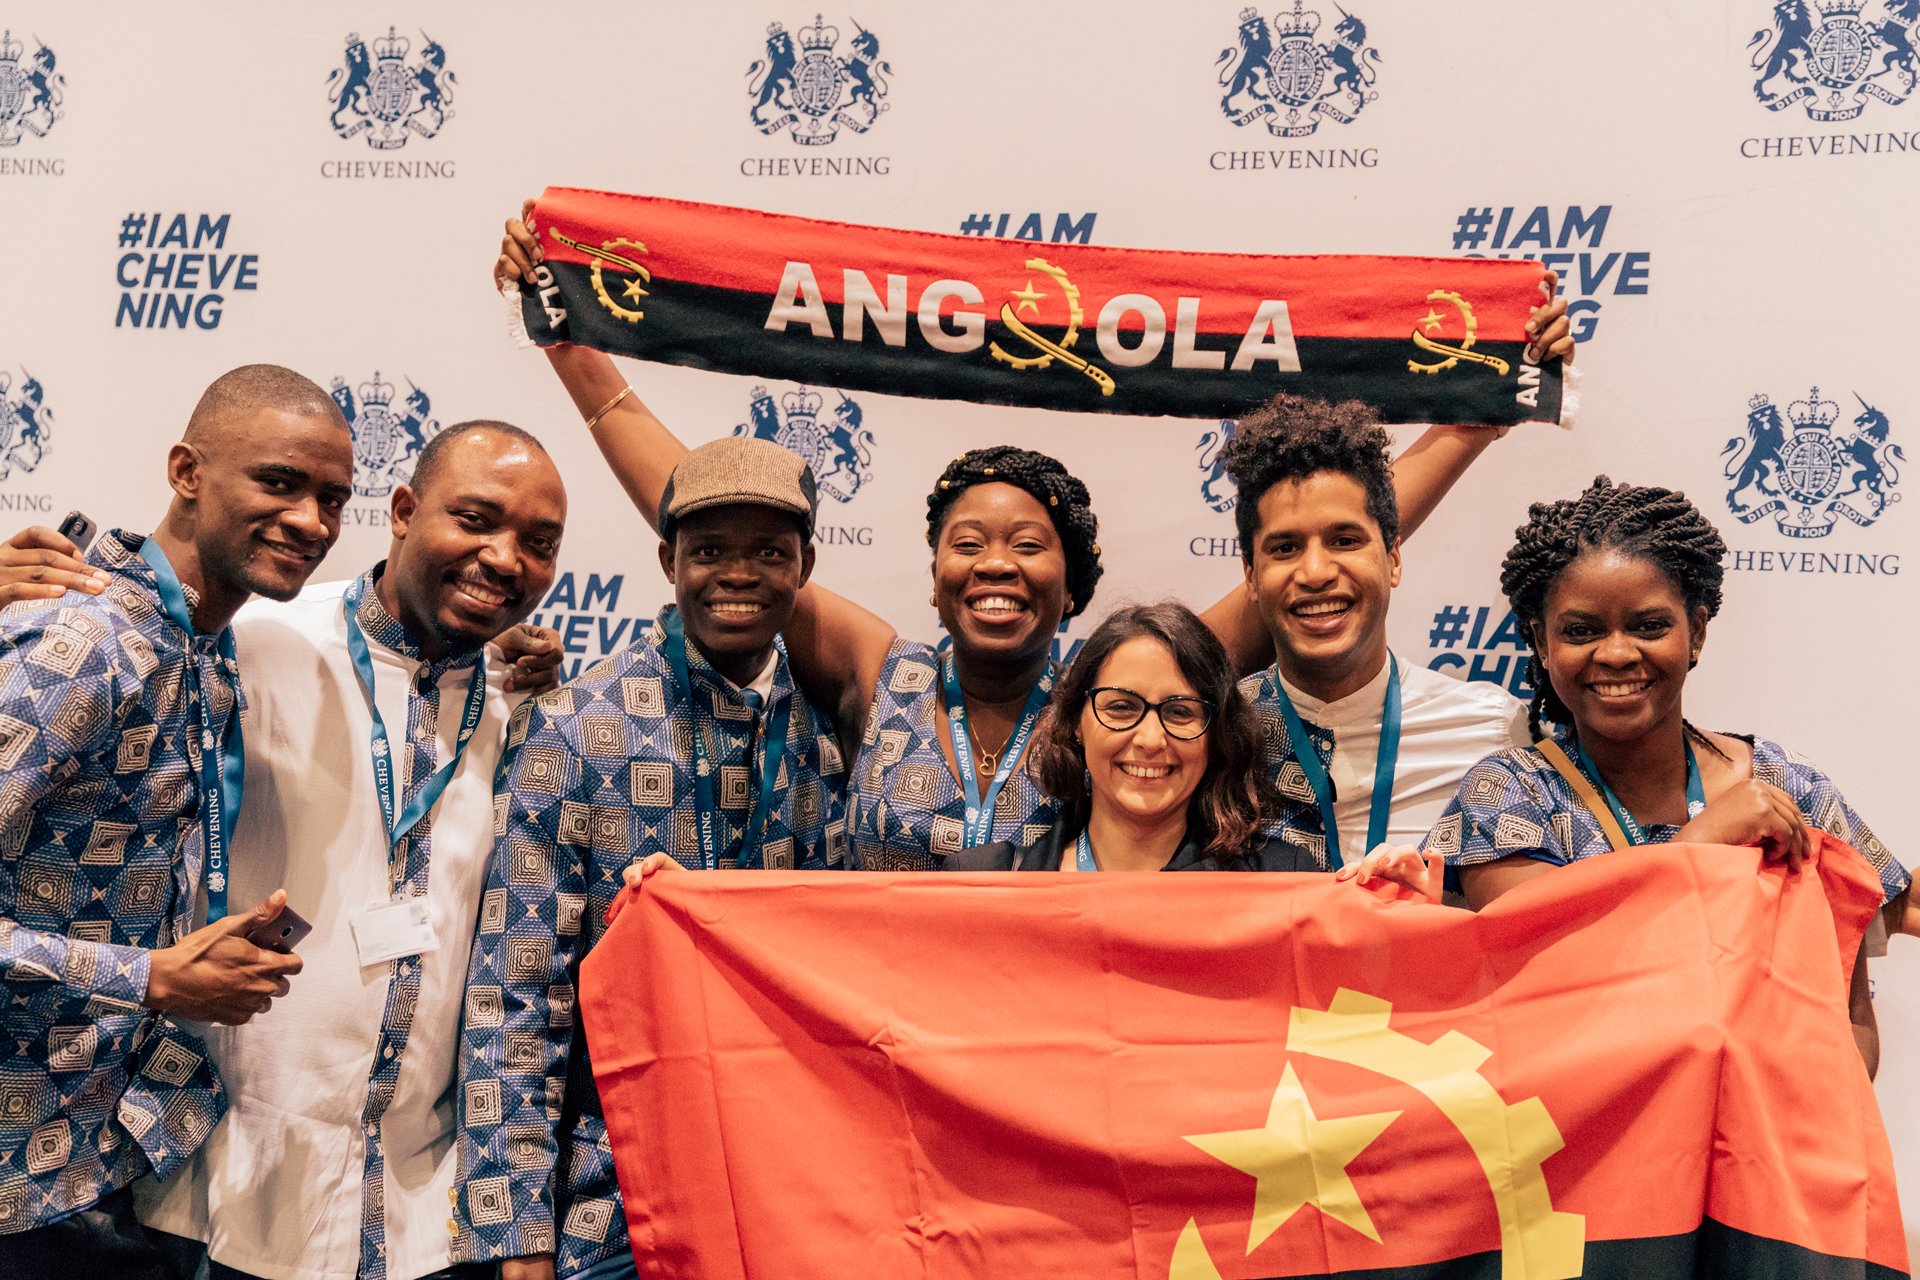 Chevening in Angola